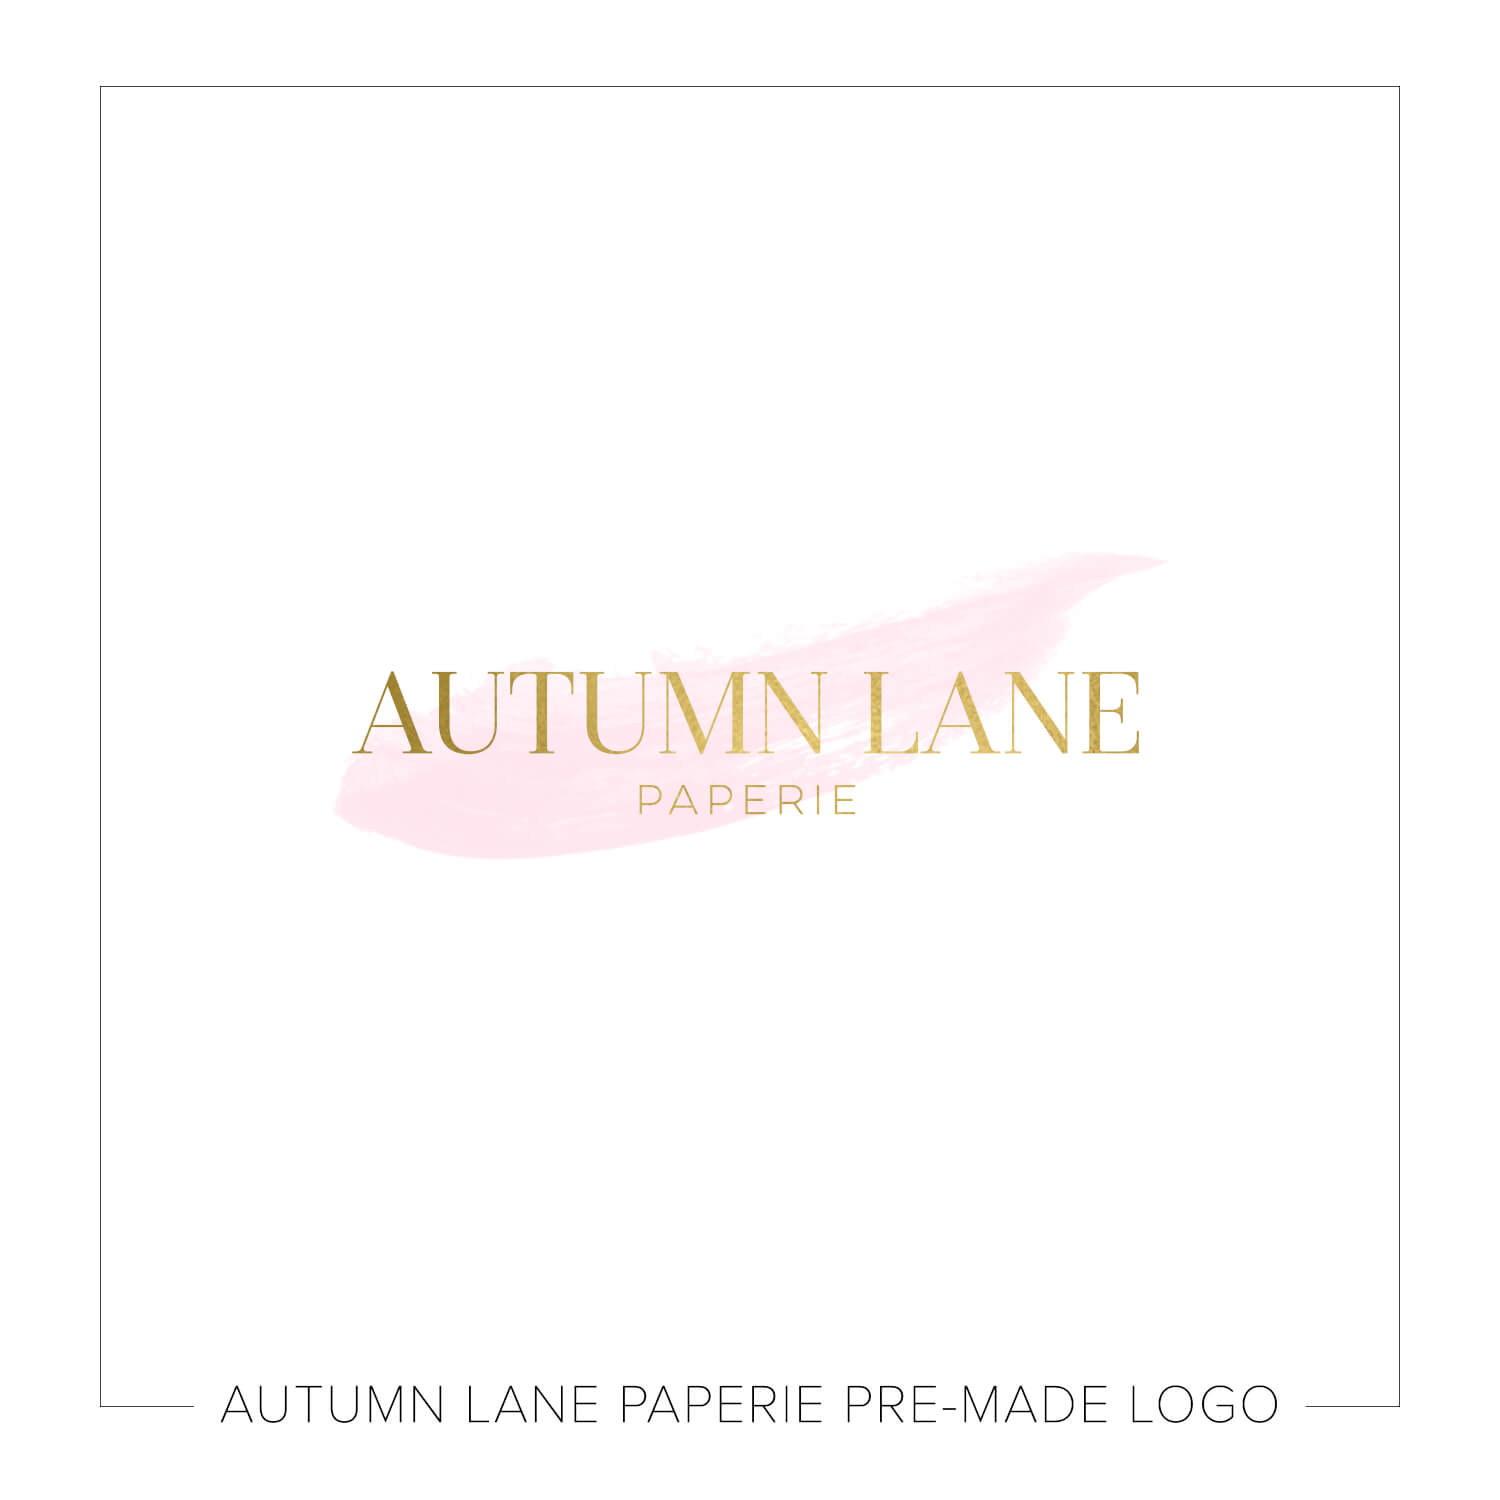 Autumn Lane Paperie Watercolor Logo Design - Gold & Blush Simple Logo J73